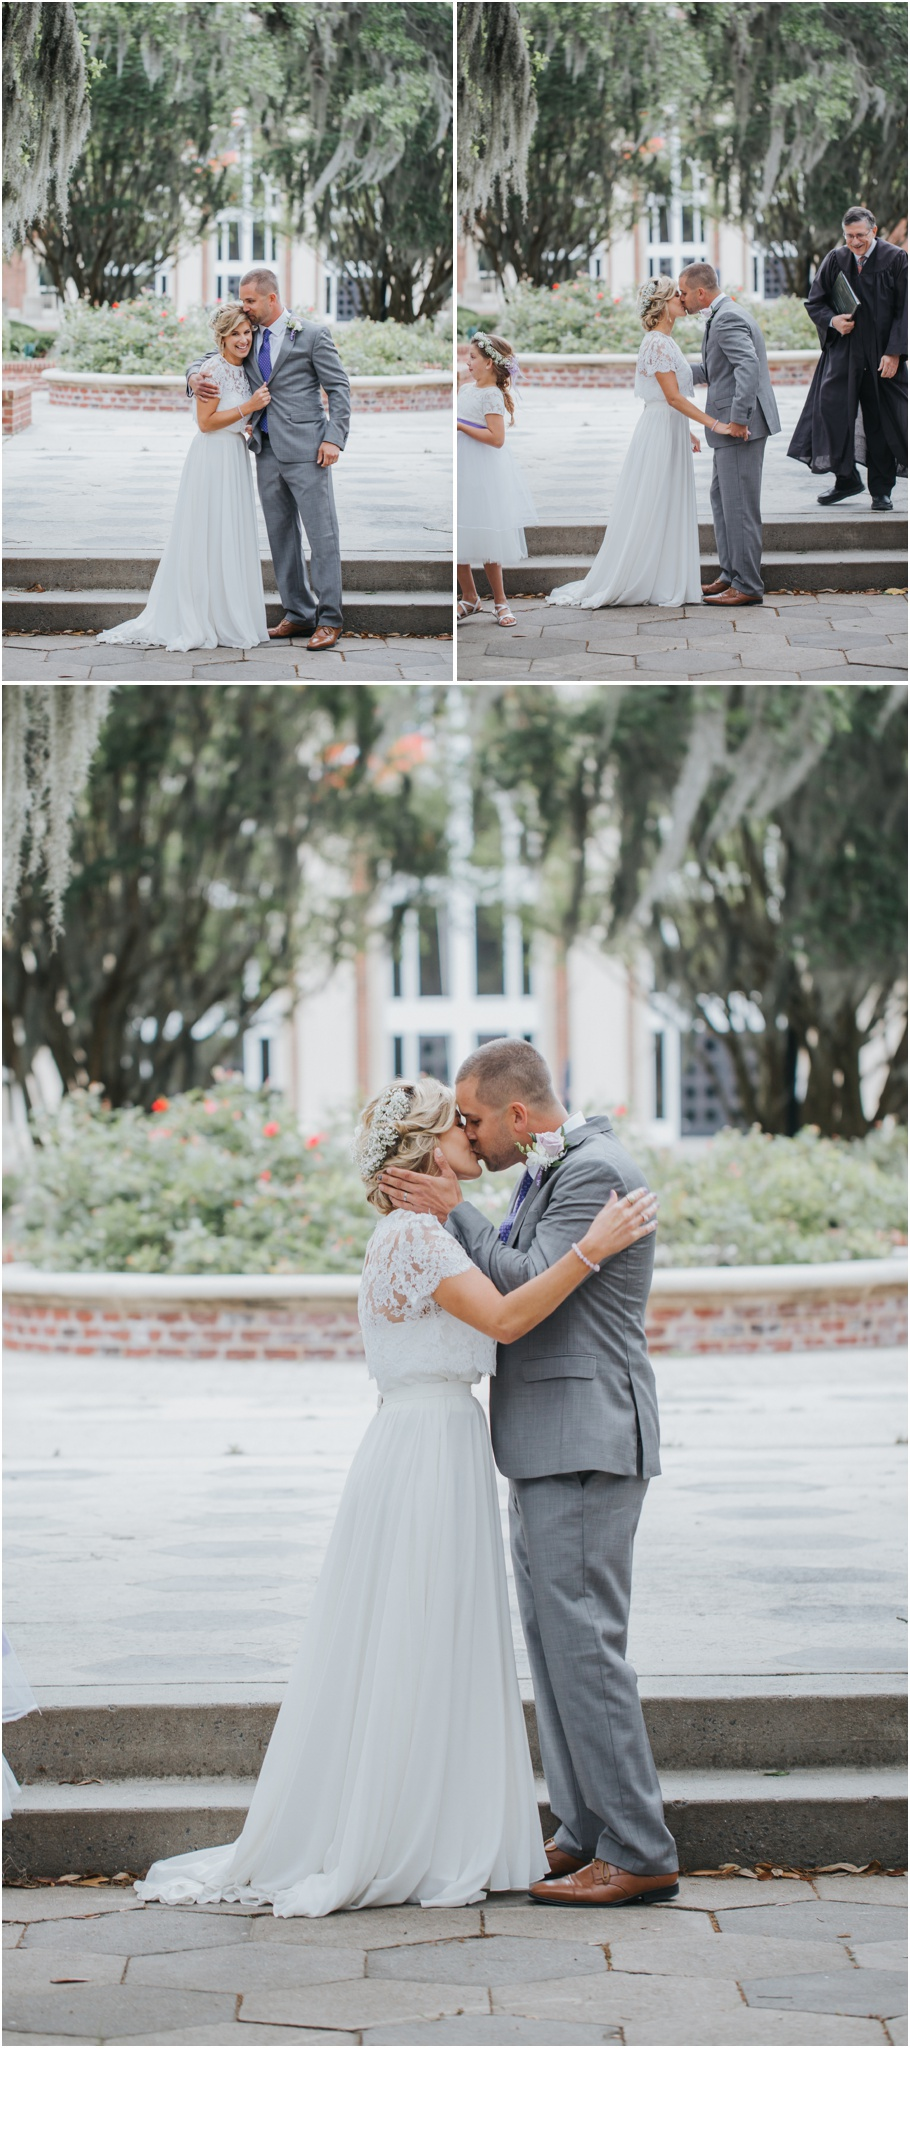 Rainey_Gregg_Photography_St._Simons_Island_Georgia_California_Wedding_Portrait_Photography_1518.jpg